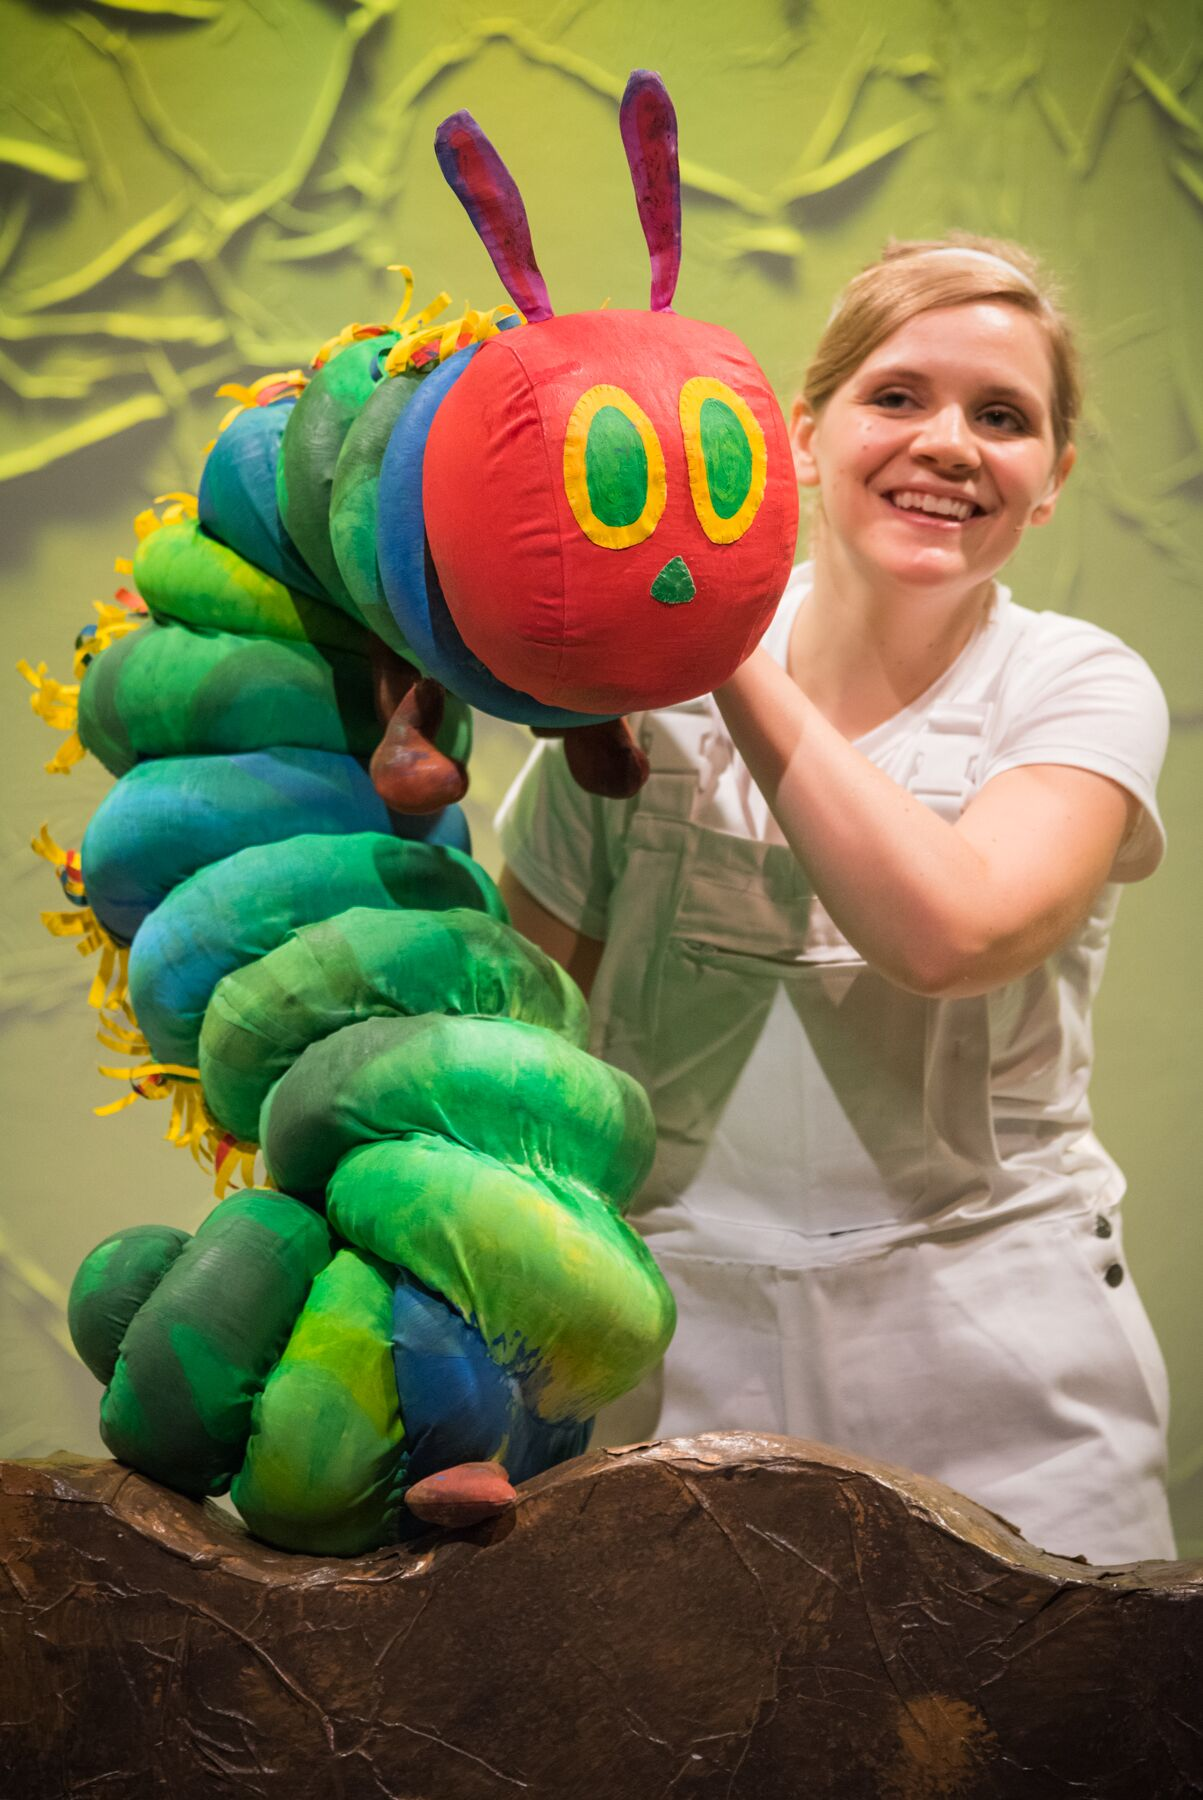 The World of Eric Carle Comes to Life in The Very Hungry Caterpillar Show.